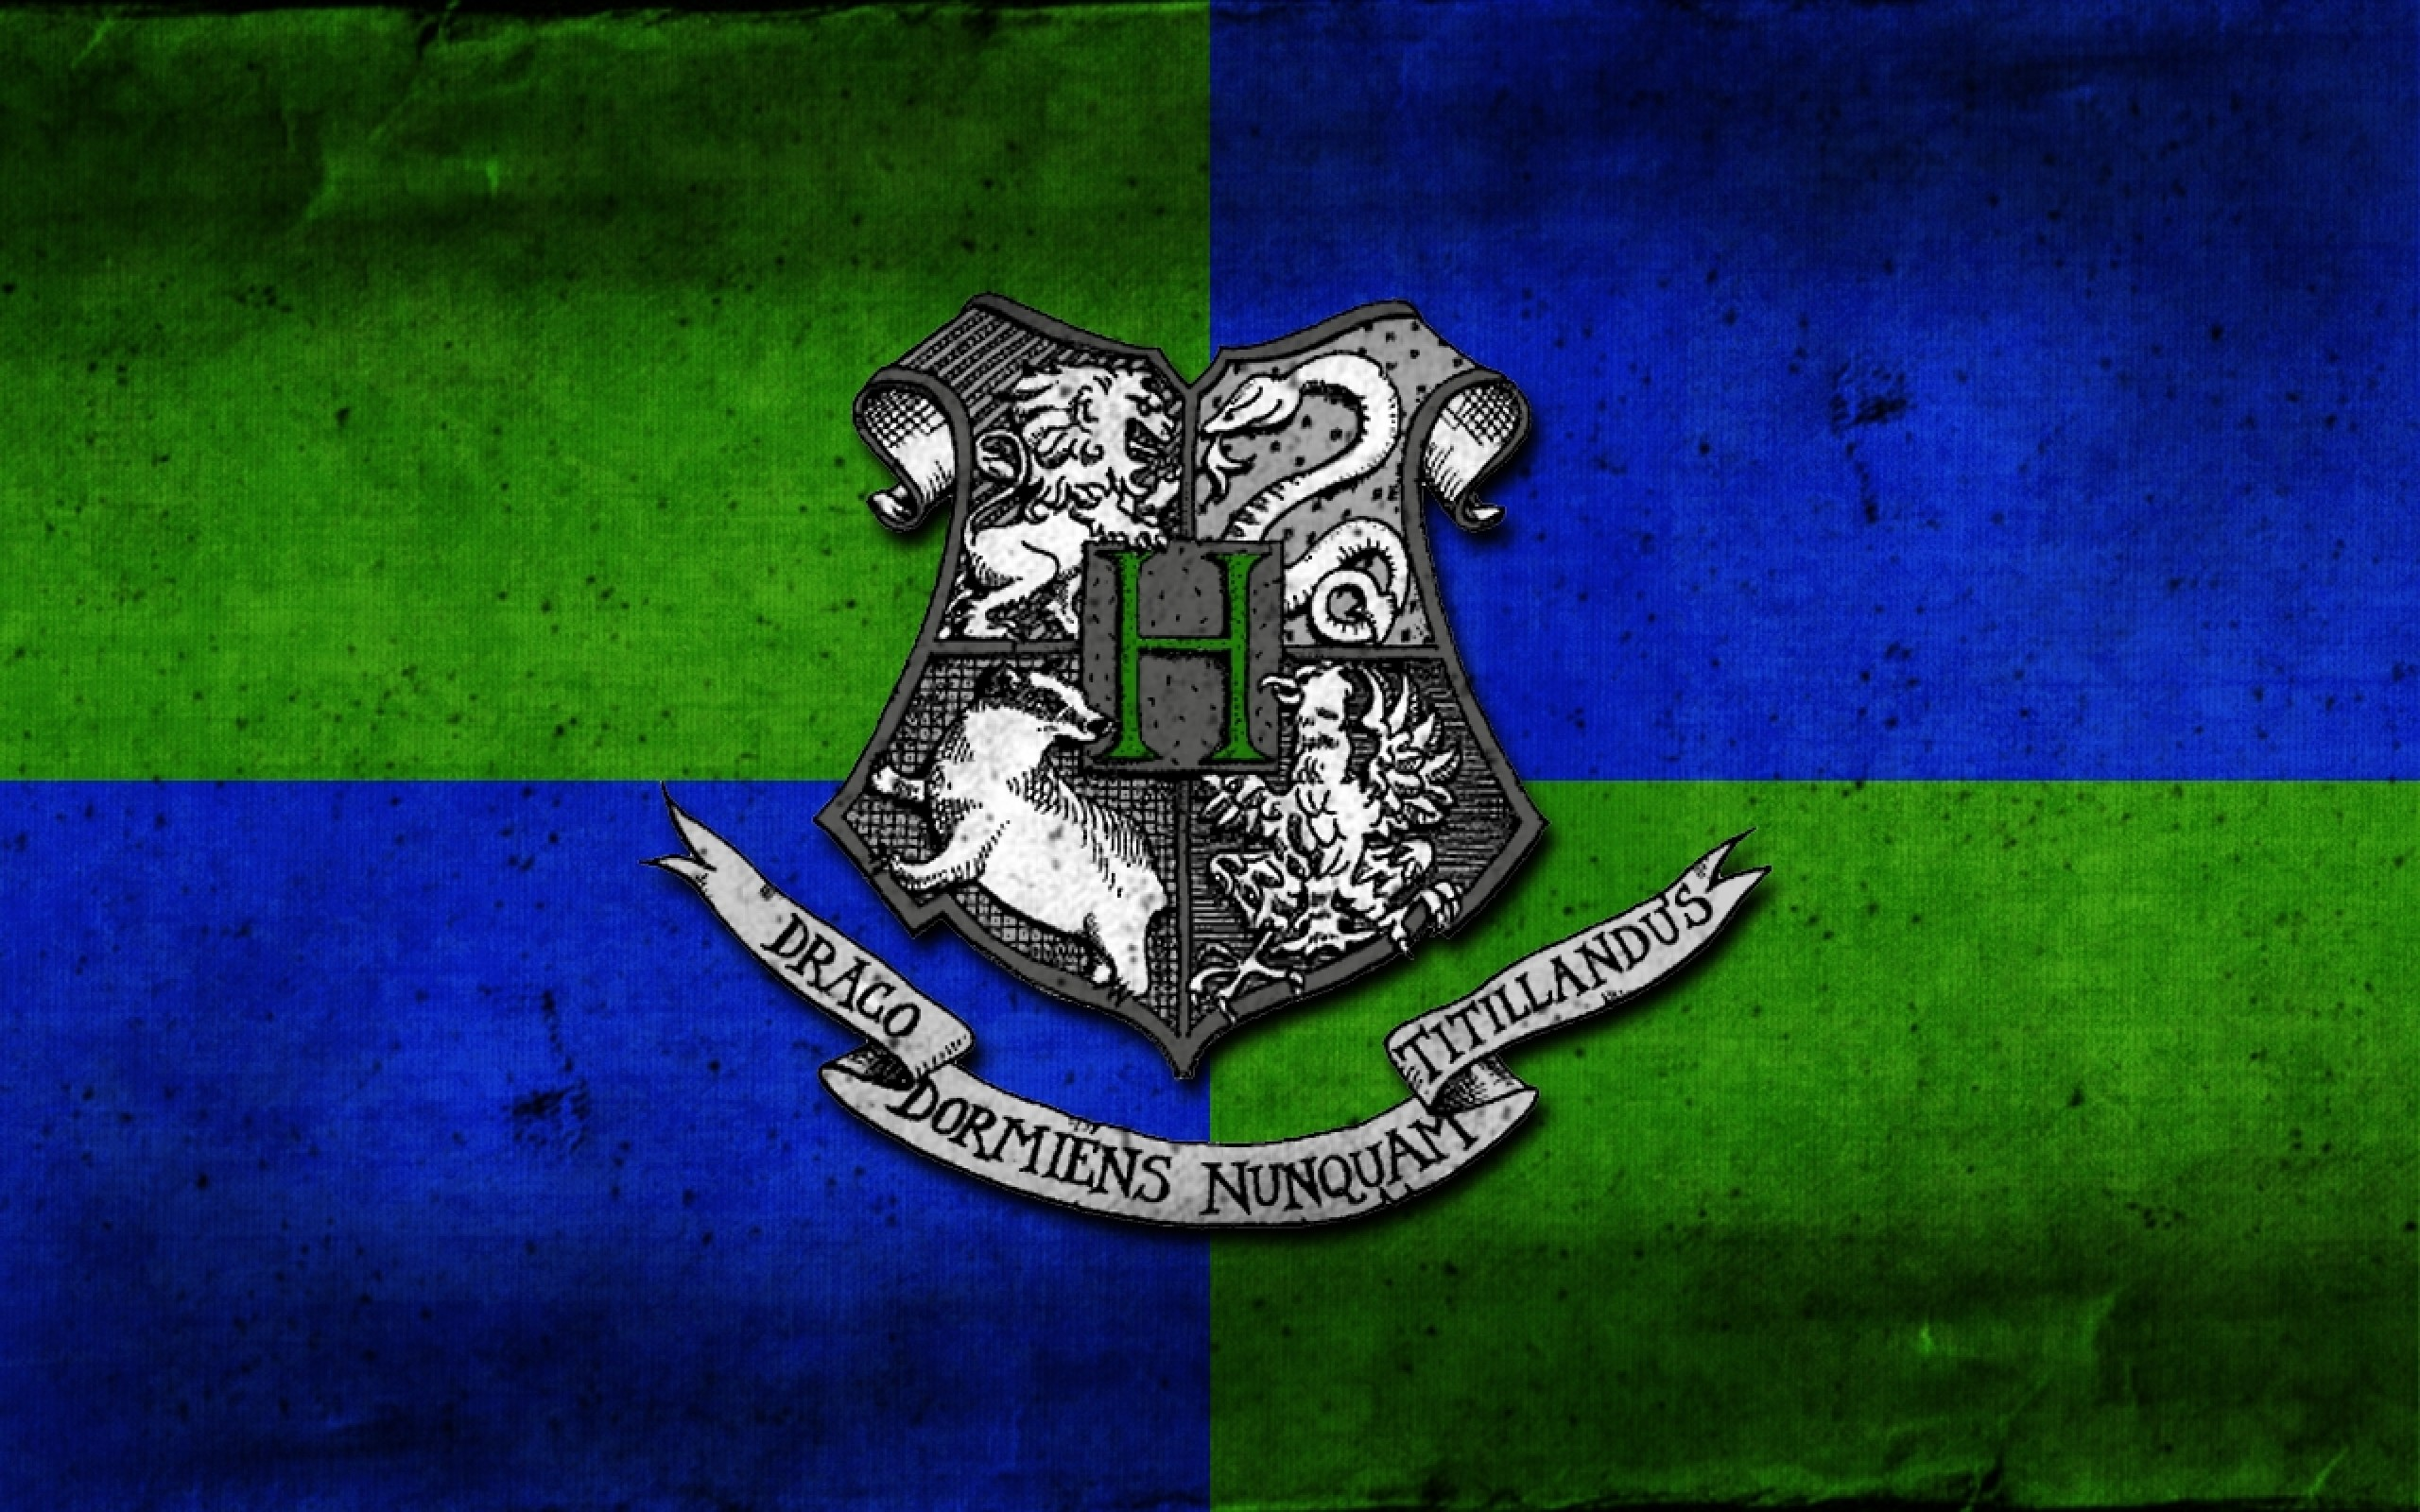 School Harry Potter Crest Hufflepuff Gryffindor Hogwarts - Slytherin And Ravenclaw Combined - HD Wallpaper